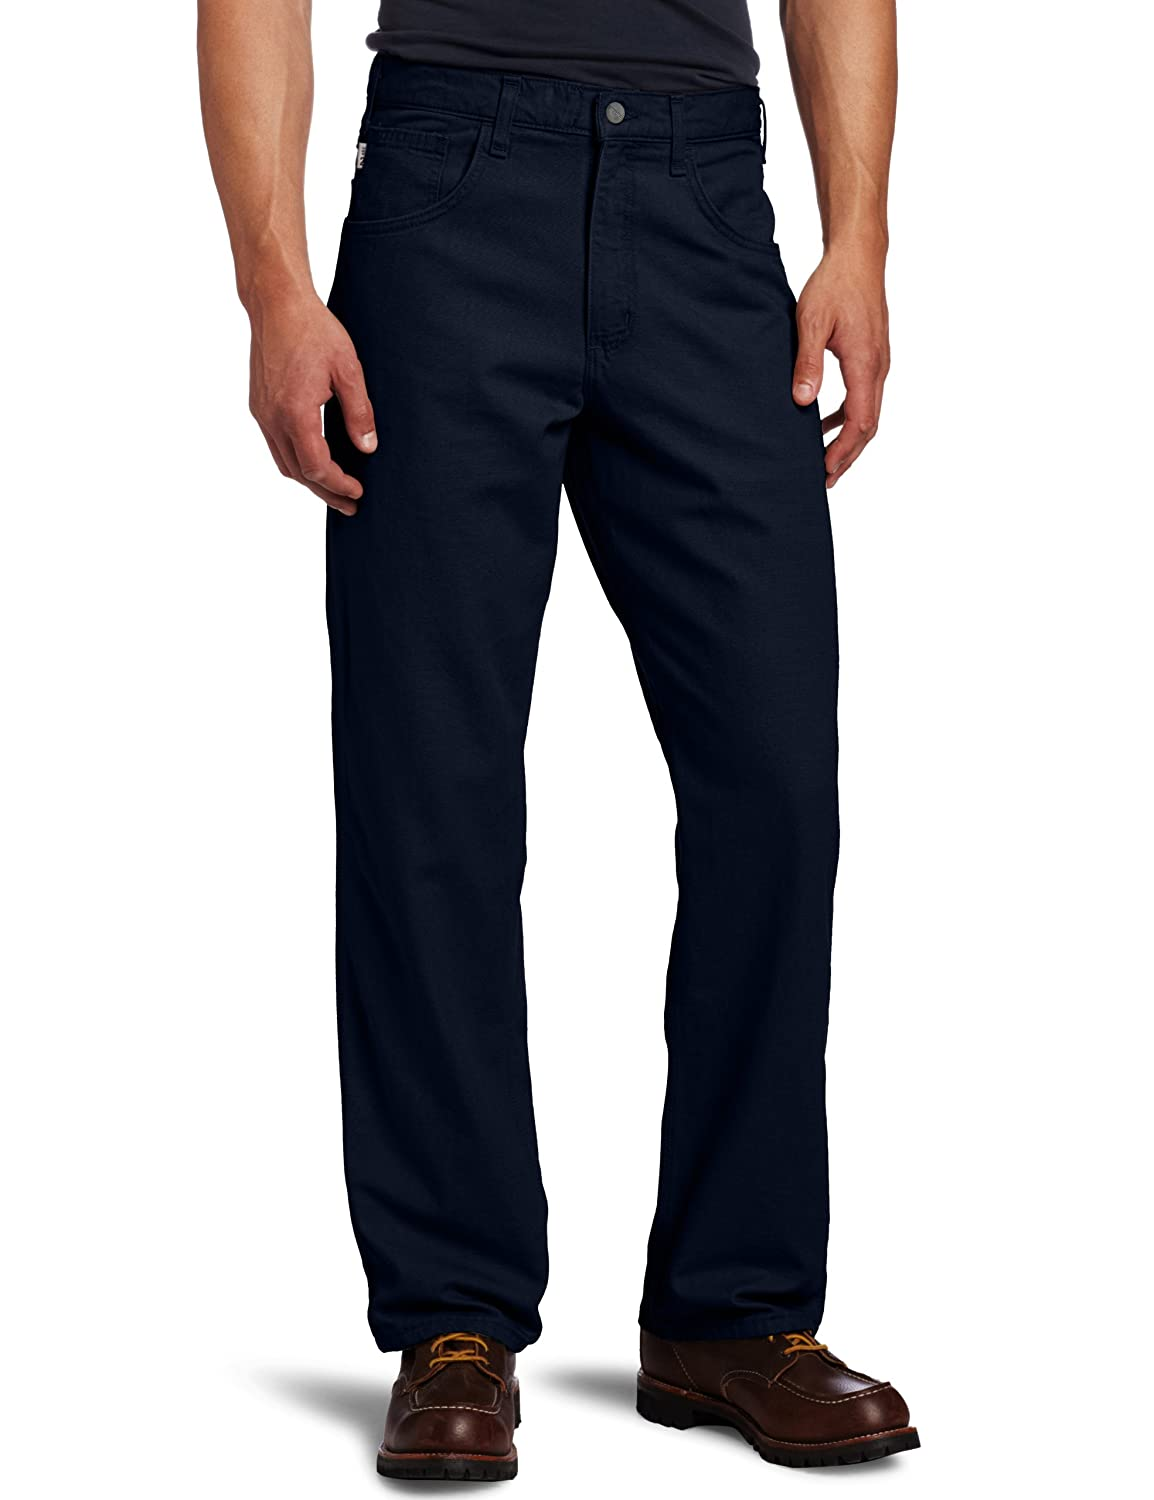 Carhartt Men's Flame Resistant Canvas Pant Carhartt Sportswear - Mens FRB159